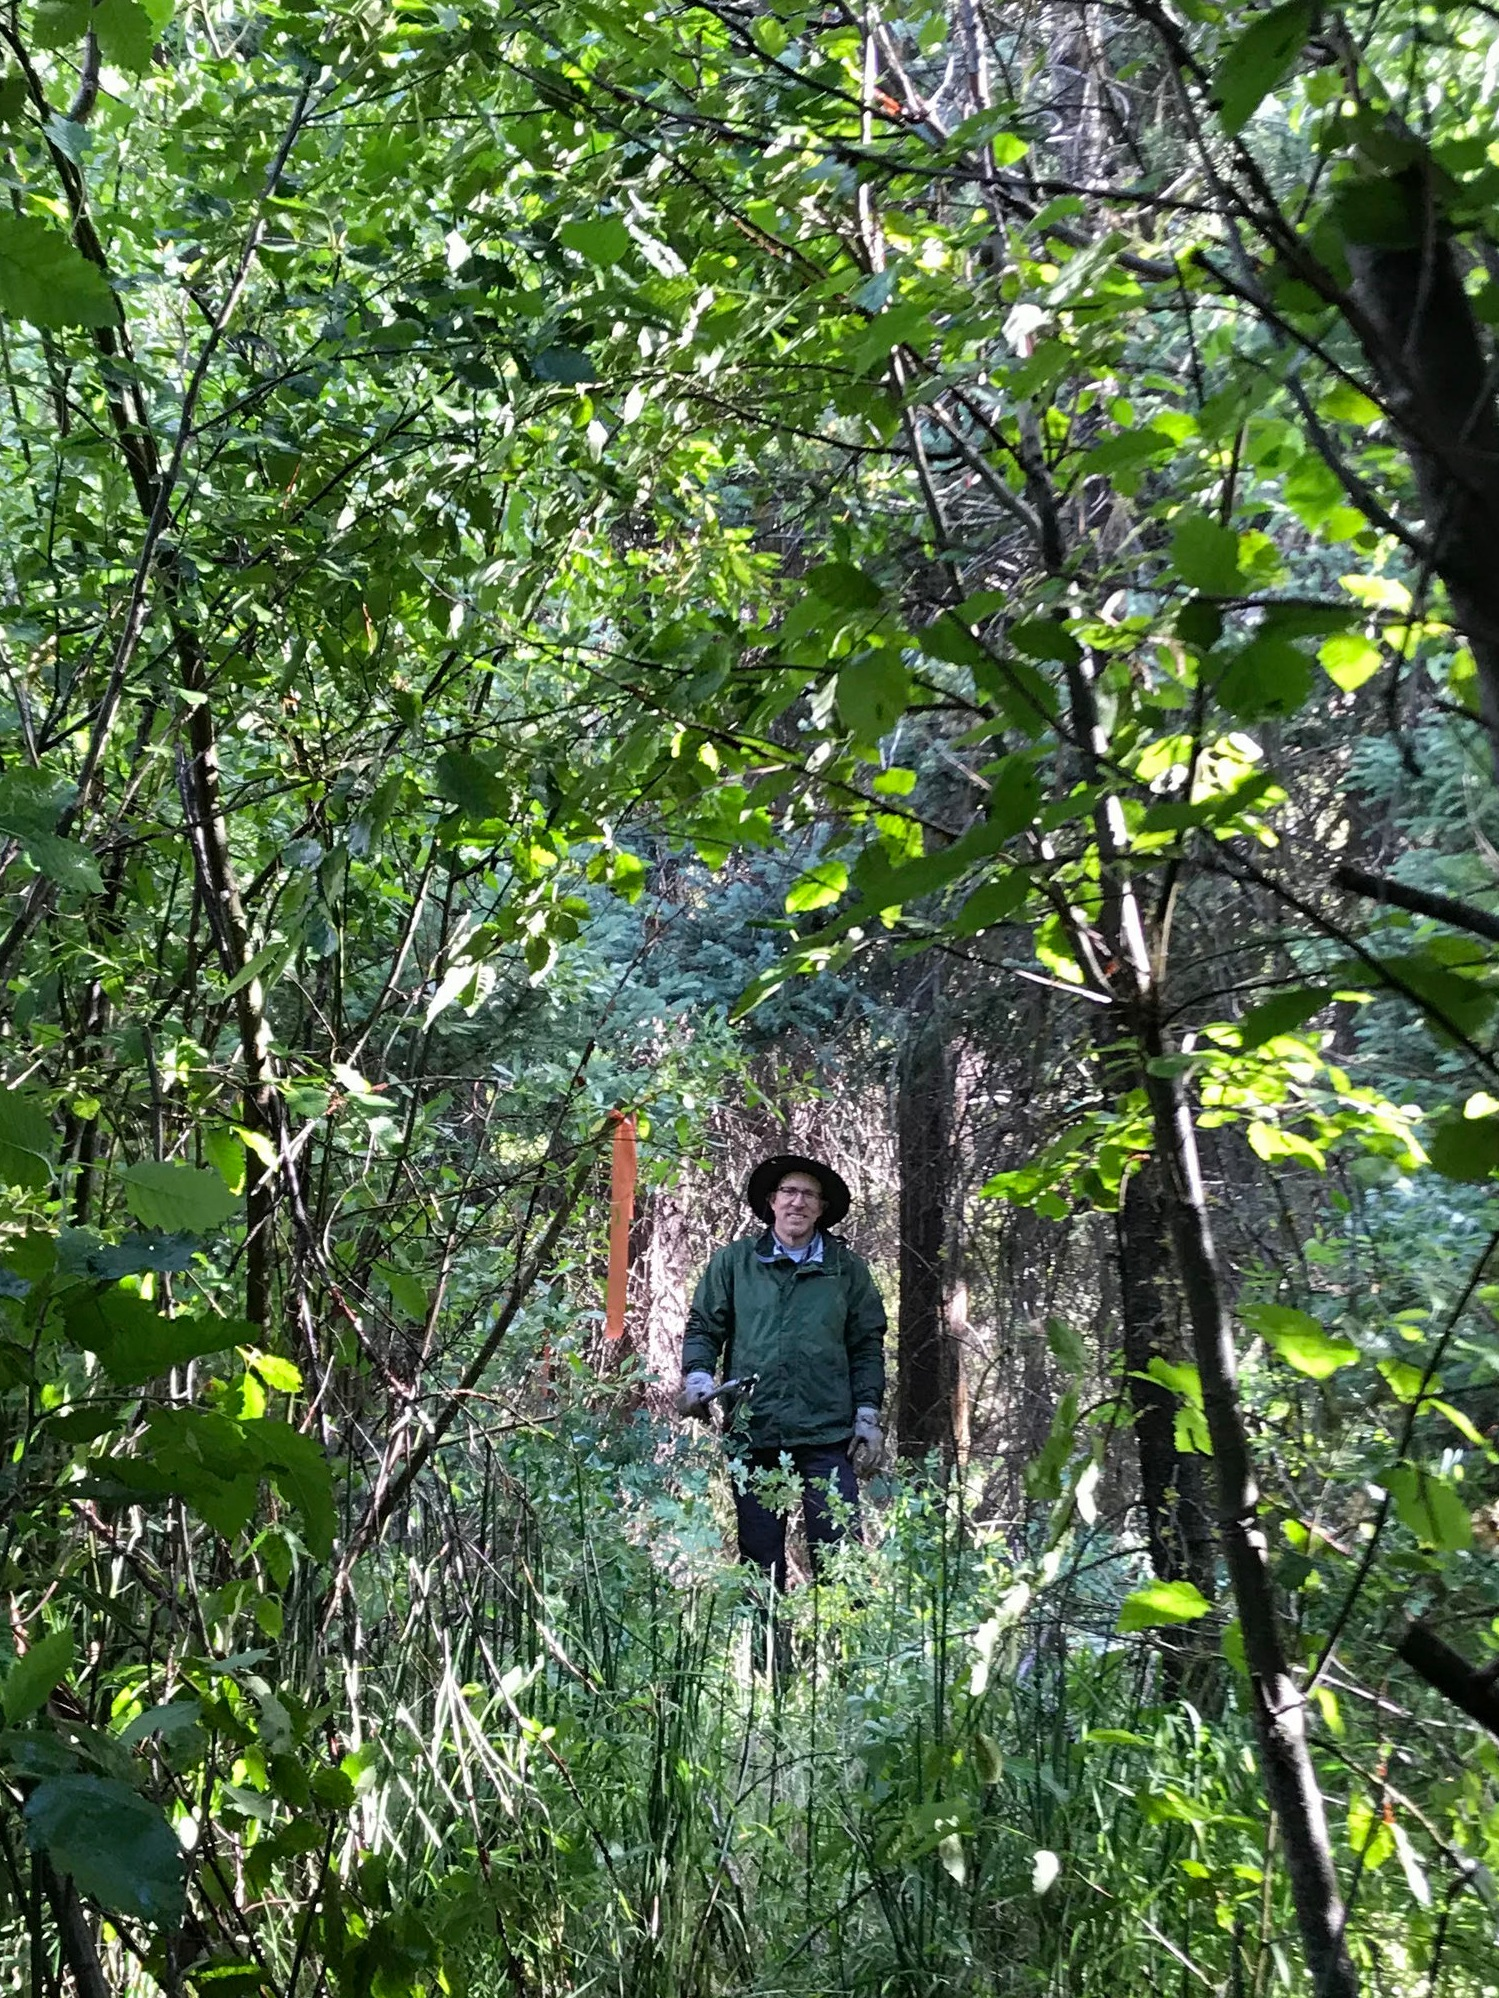 Our amazing volunteer Tom standing amongst some of the 'willow tree jungle' we were clearing.